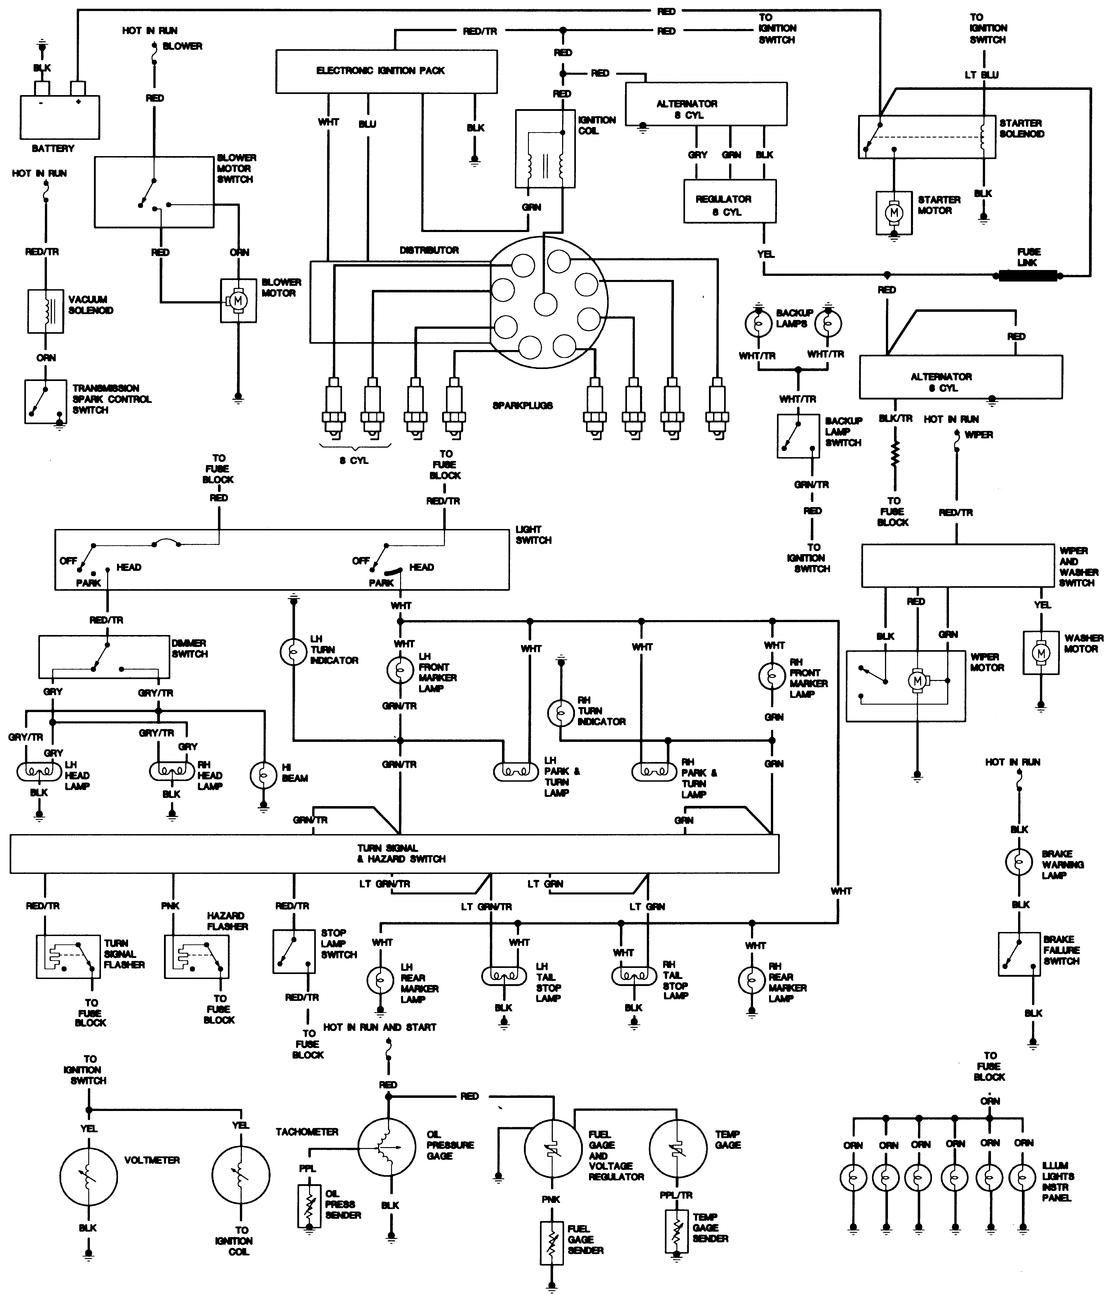 78 Cj5 Lights Wiring Diagram Grand Wagoneer Wiring Diagram